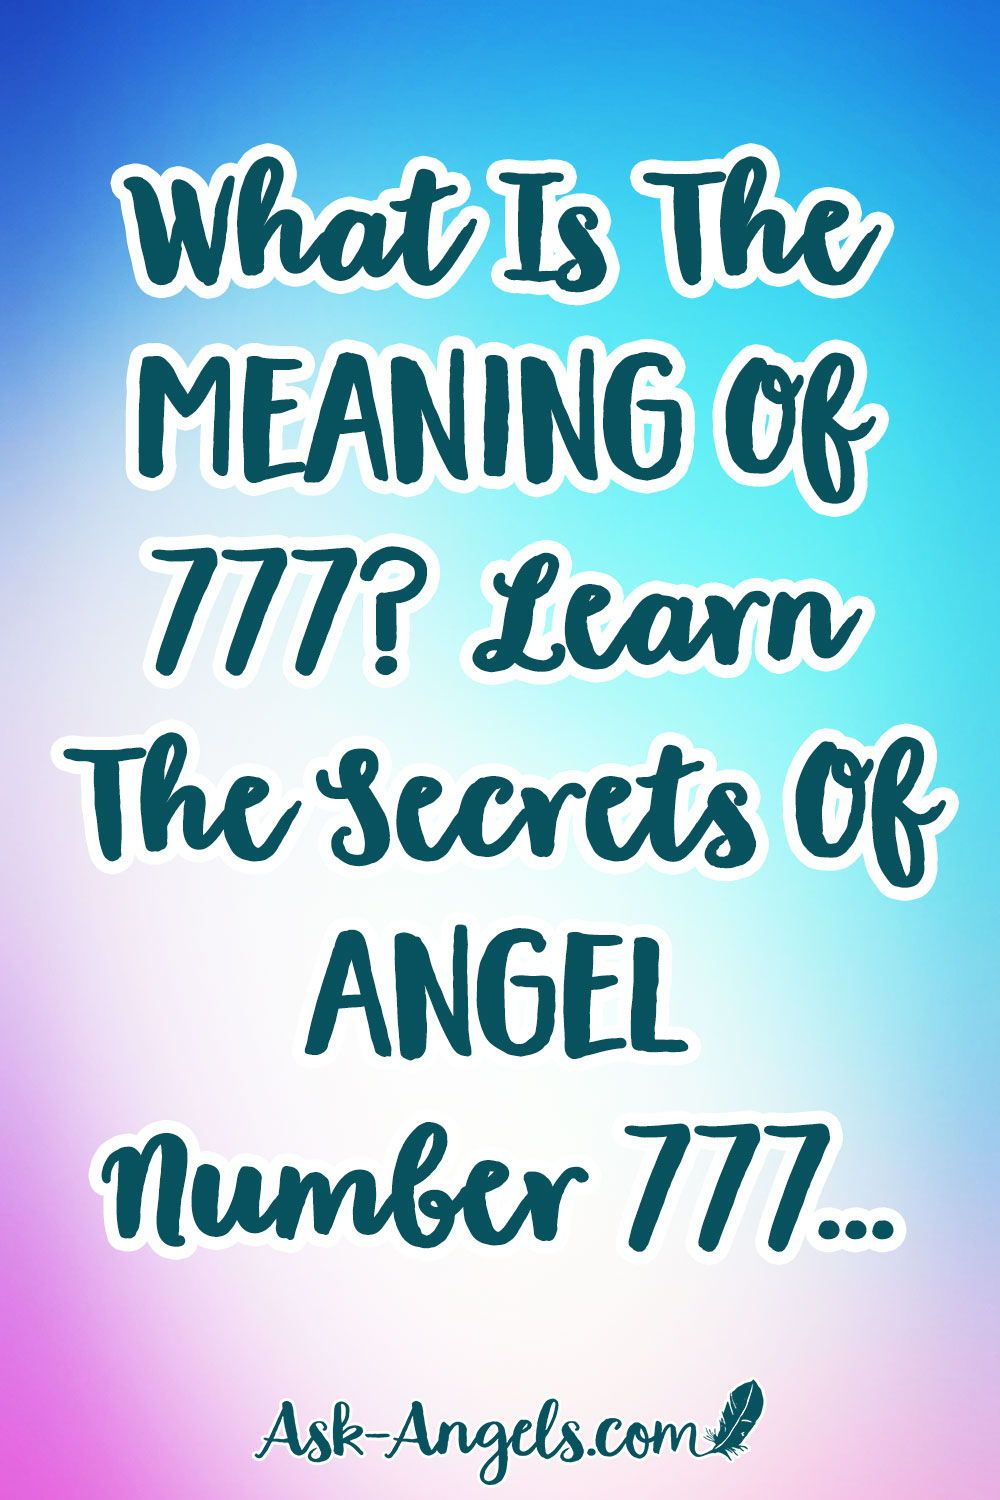 Angel Number 777 | Angel Messages | Spiritual guidance, Angel